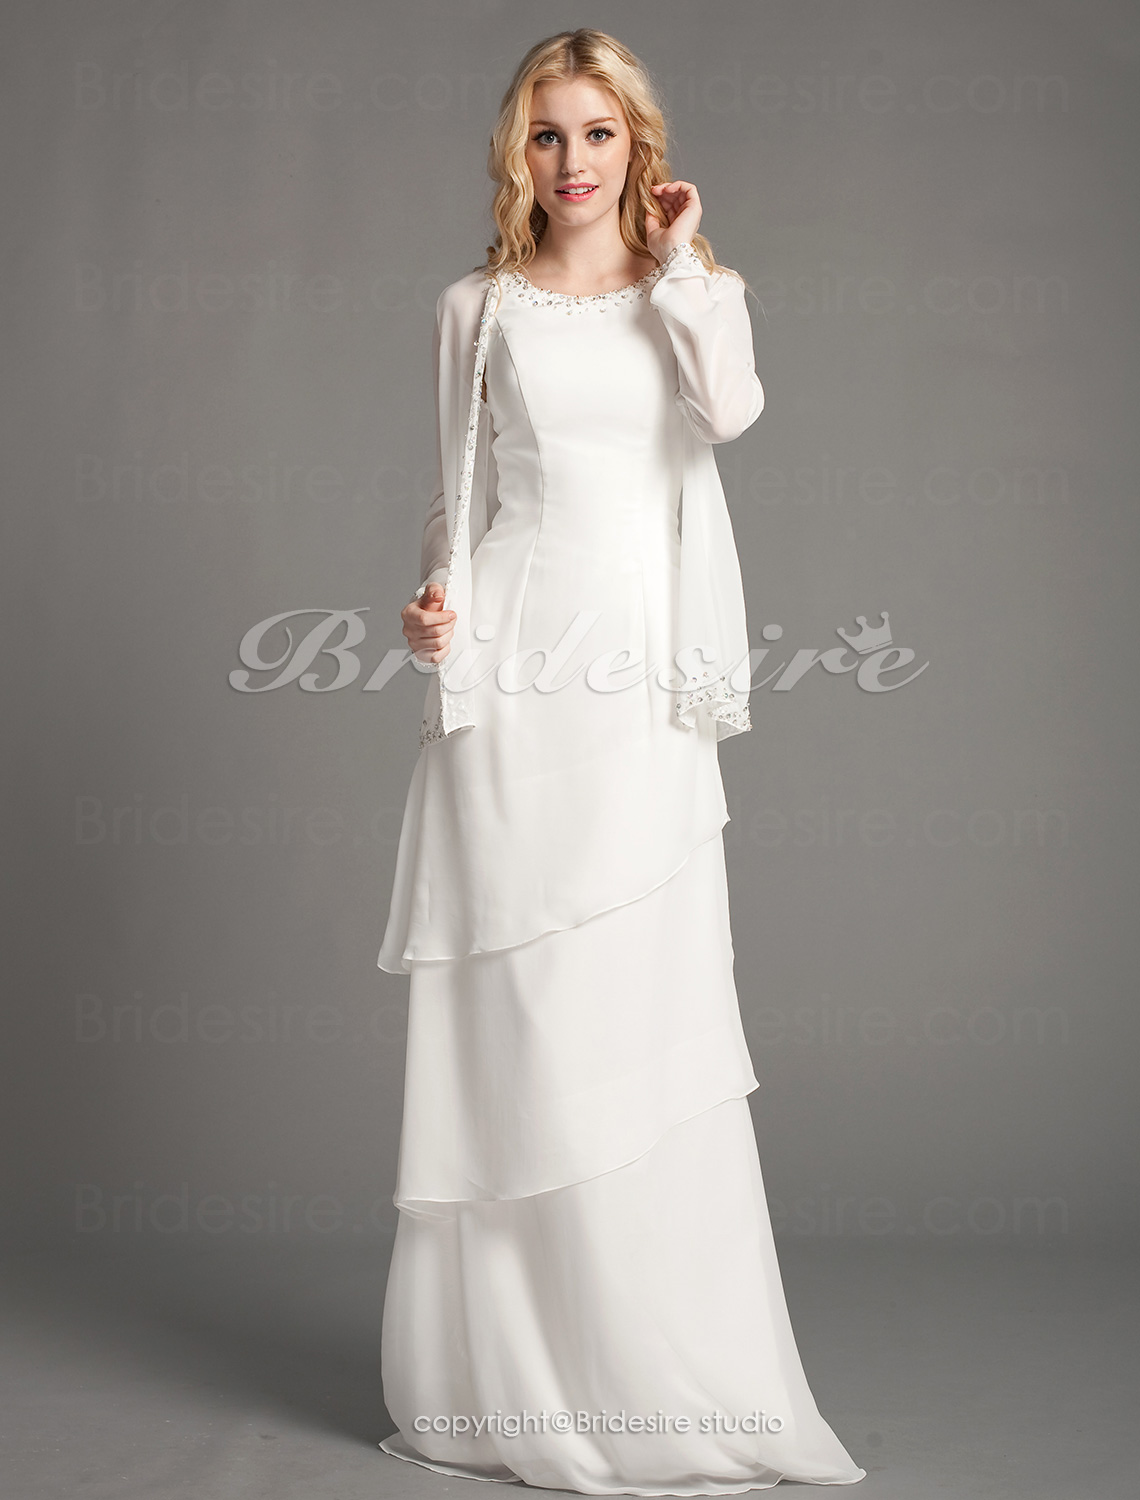 Sheath/Column Chiffon Floor-length Scoop Mother of the Bride Dress With A Wrap